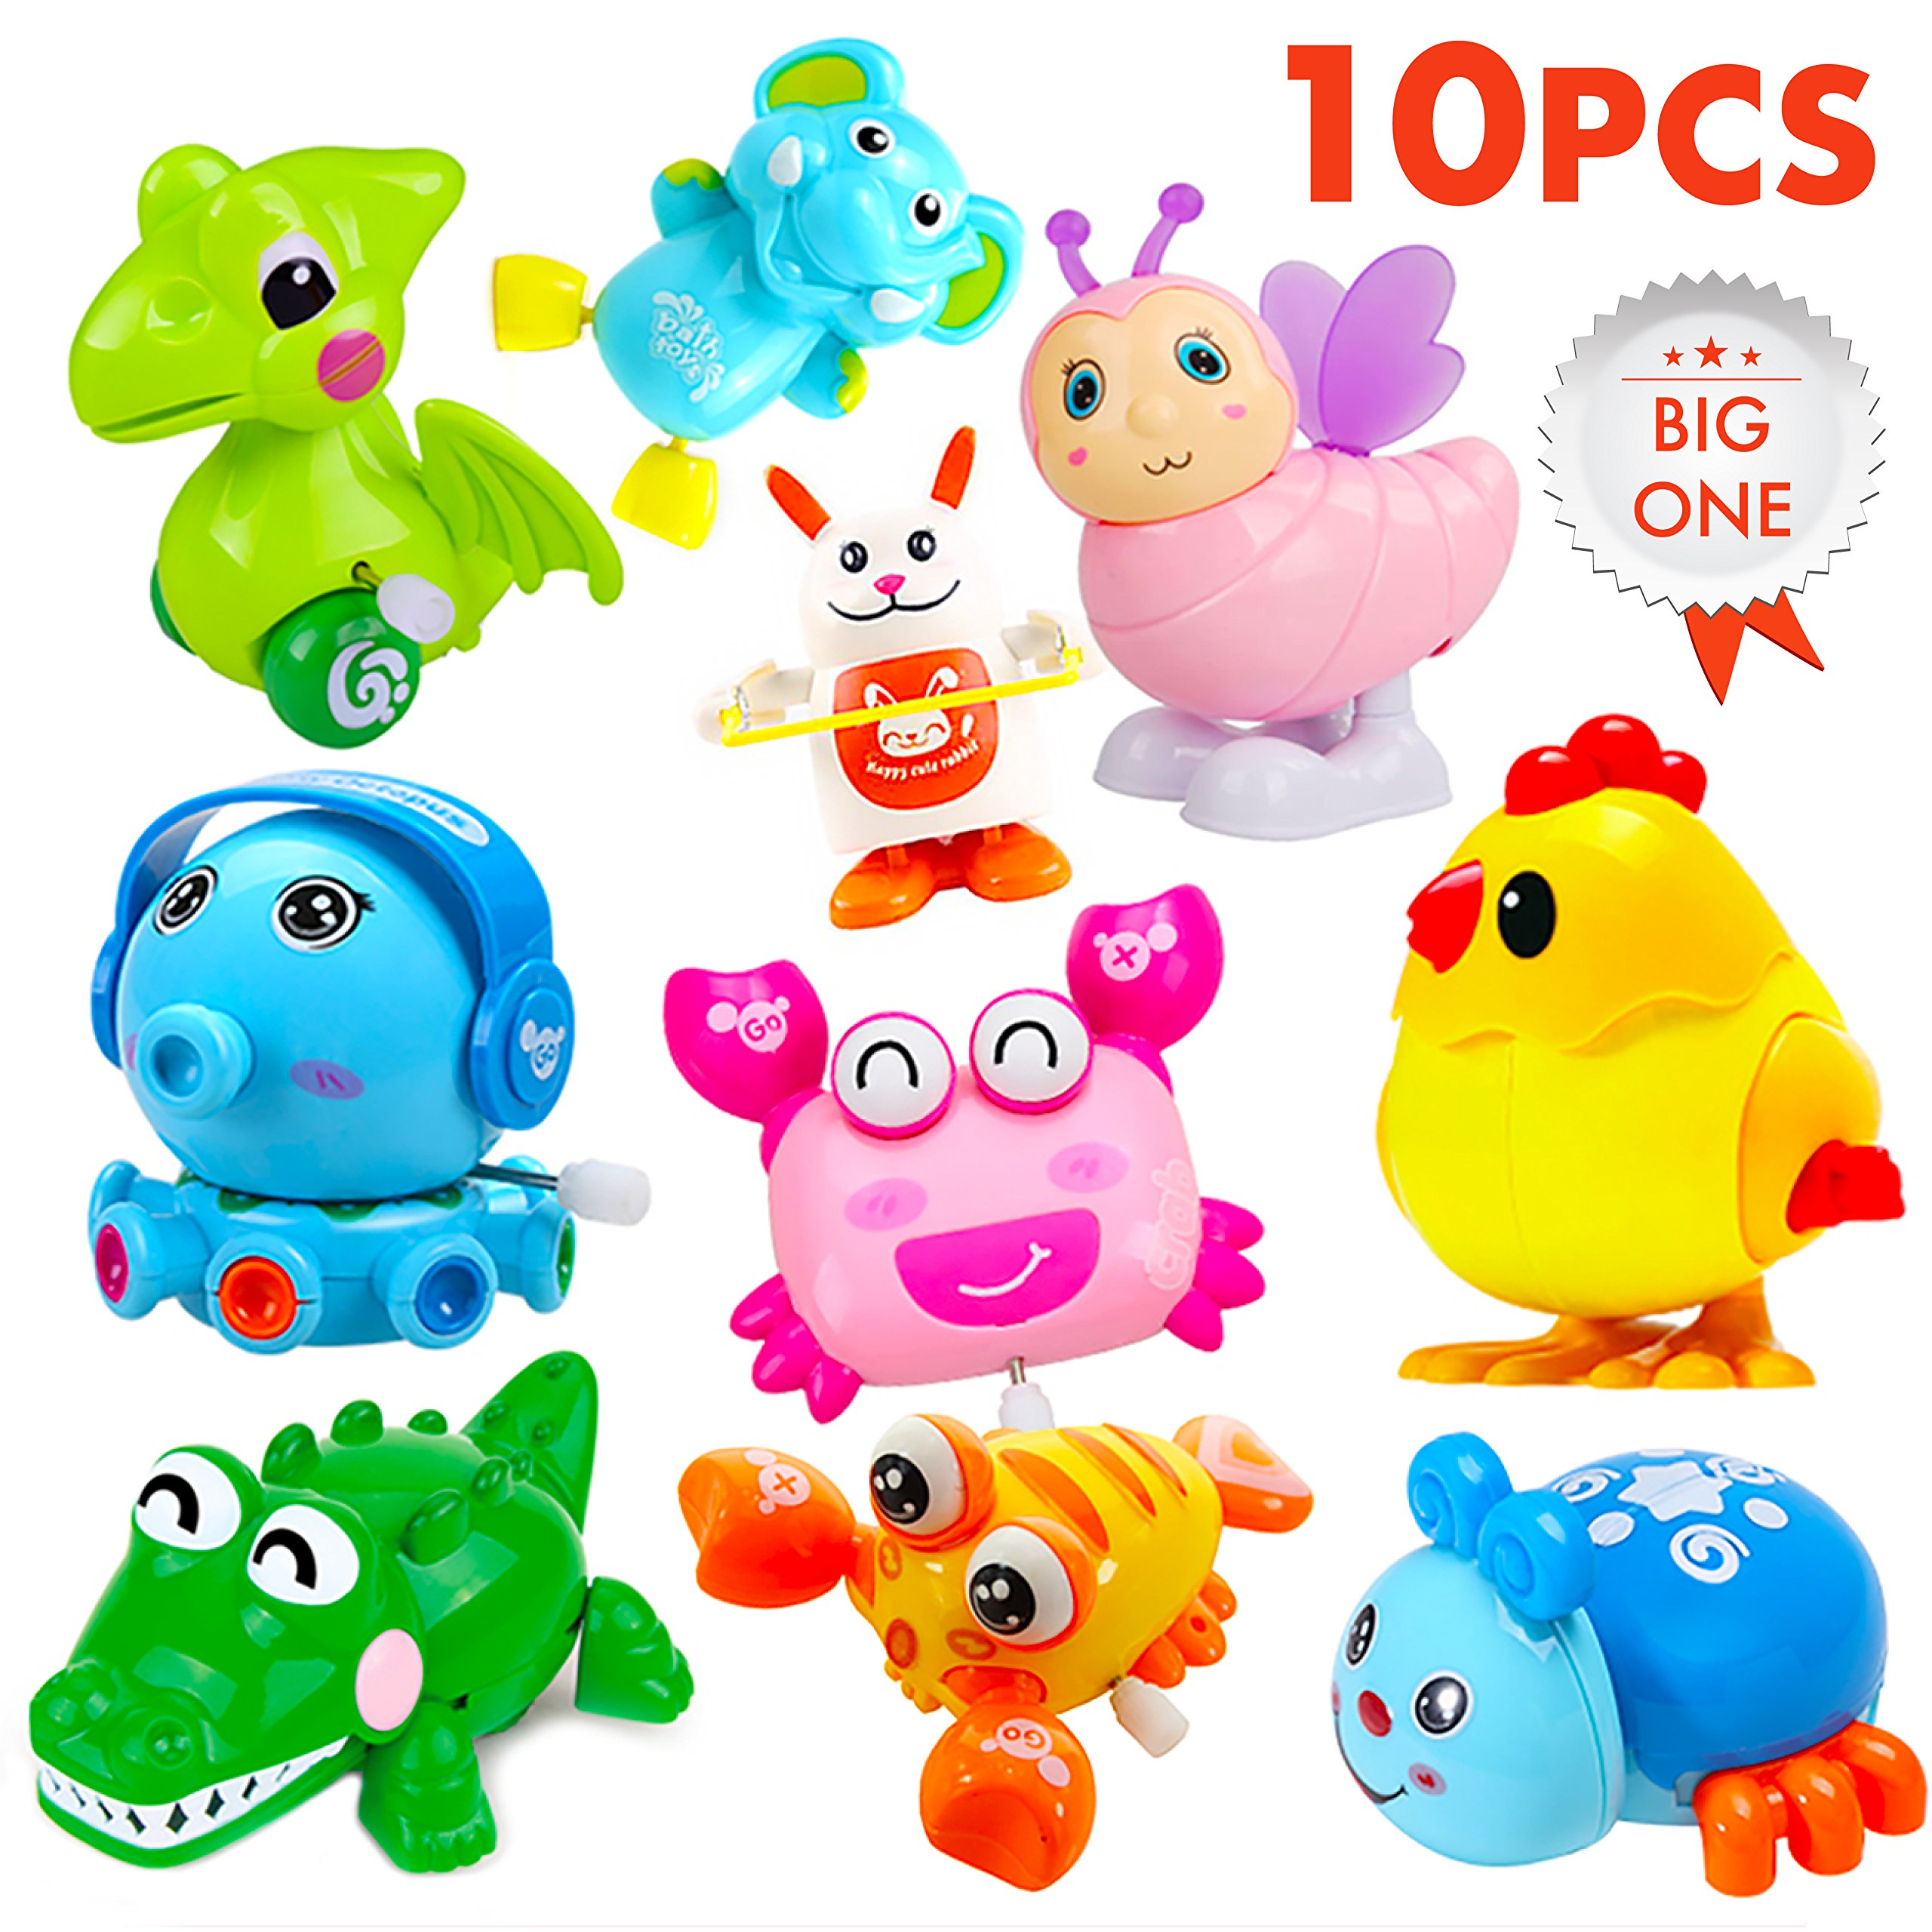 Wind up Toys / Wind up Toy Kids Toddlers Party Favors/ Assorted 10 Large Animals Wind-up Toys / Clockwork Toy Set / Hopping Toy / Birthday Goody Bags / Game Prizes / Toy Chests (Set of 10 )